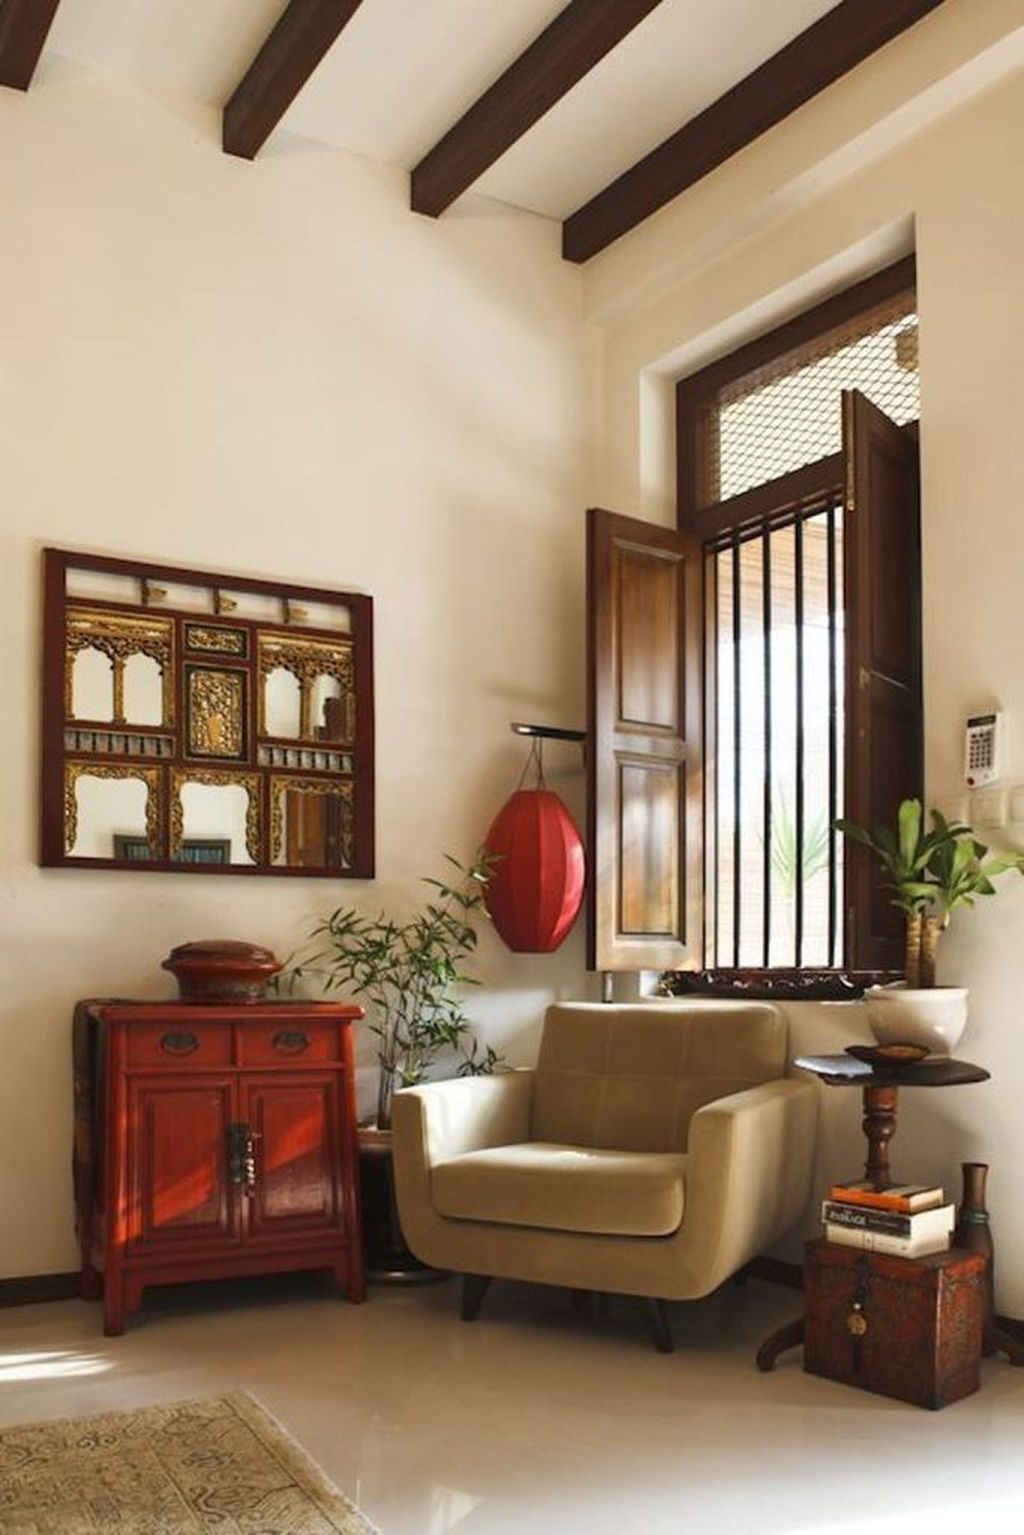 30 Beautiful Traditional Home Decor Ideas | Indian home ...